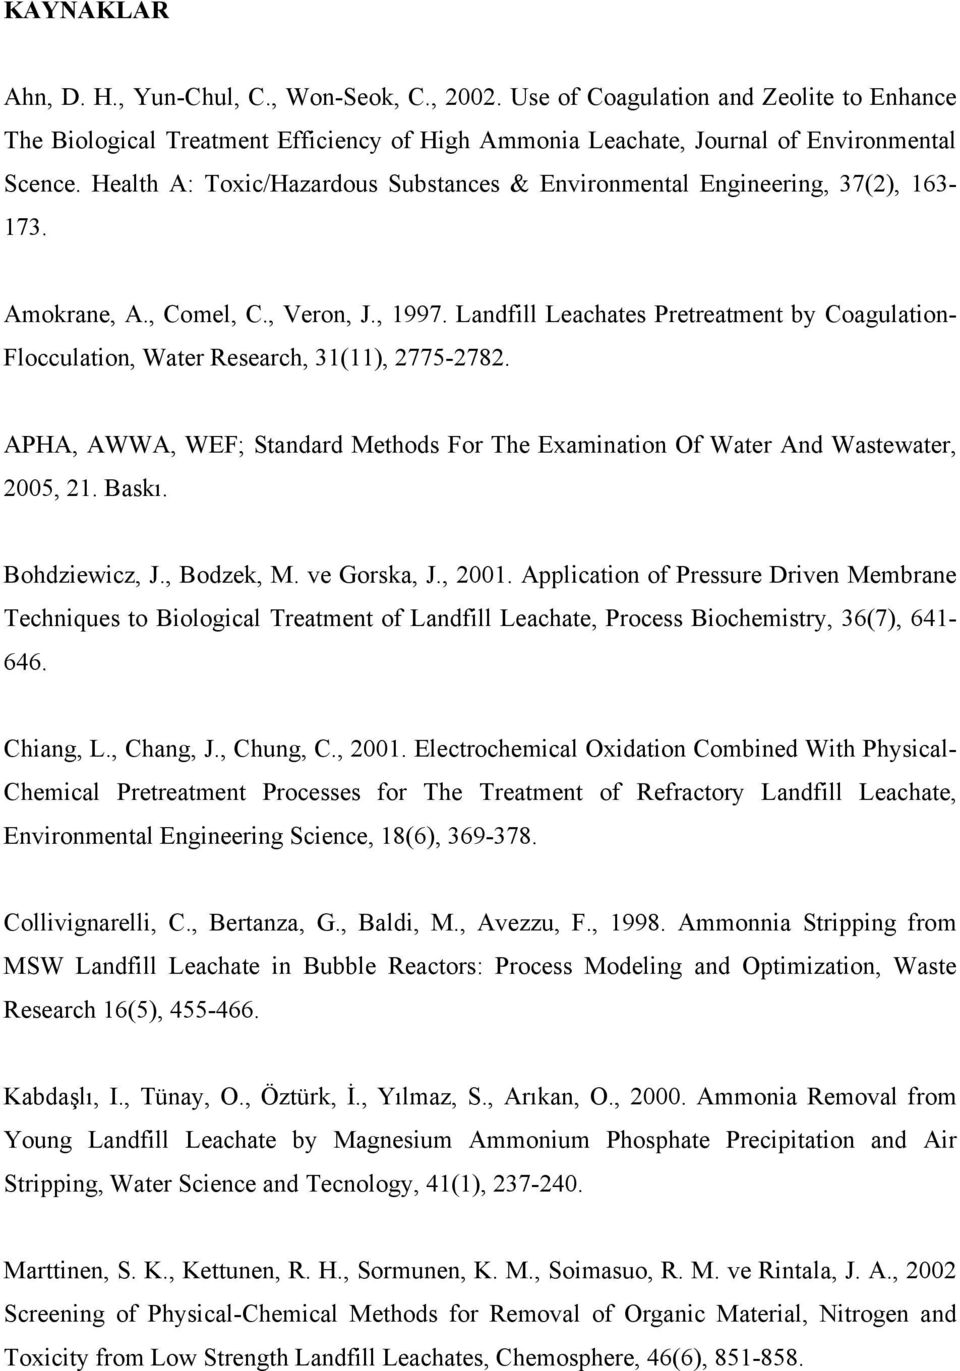 Landfill Leachates Pretreatment by Coagulation- Flocculation, Water Research, 31(11), 2775-2782. APHA, AWWA, WEF; Standard Methods For The Examination Of Water And Wastewater, 2005, 21. Baskı.